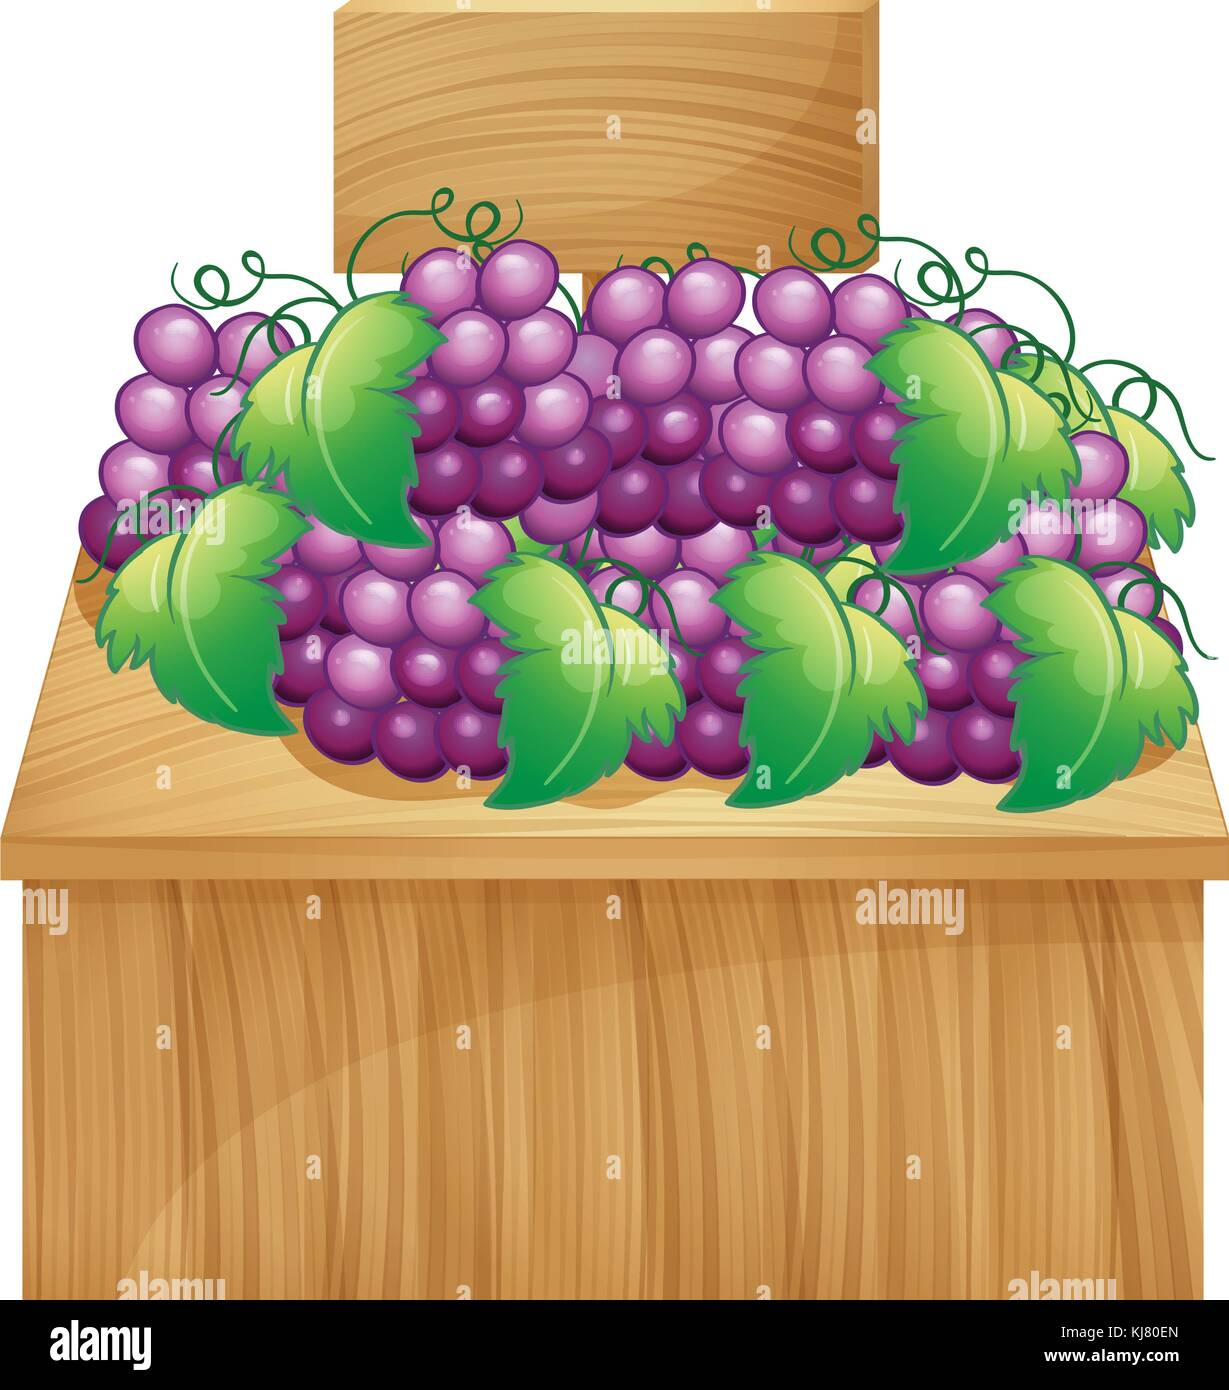 Illustration of a fruit stand for grapes with an empty signage on a white background Stock Vector